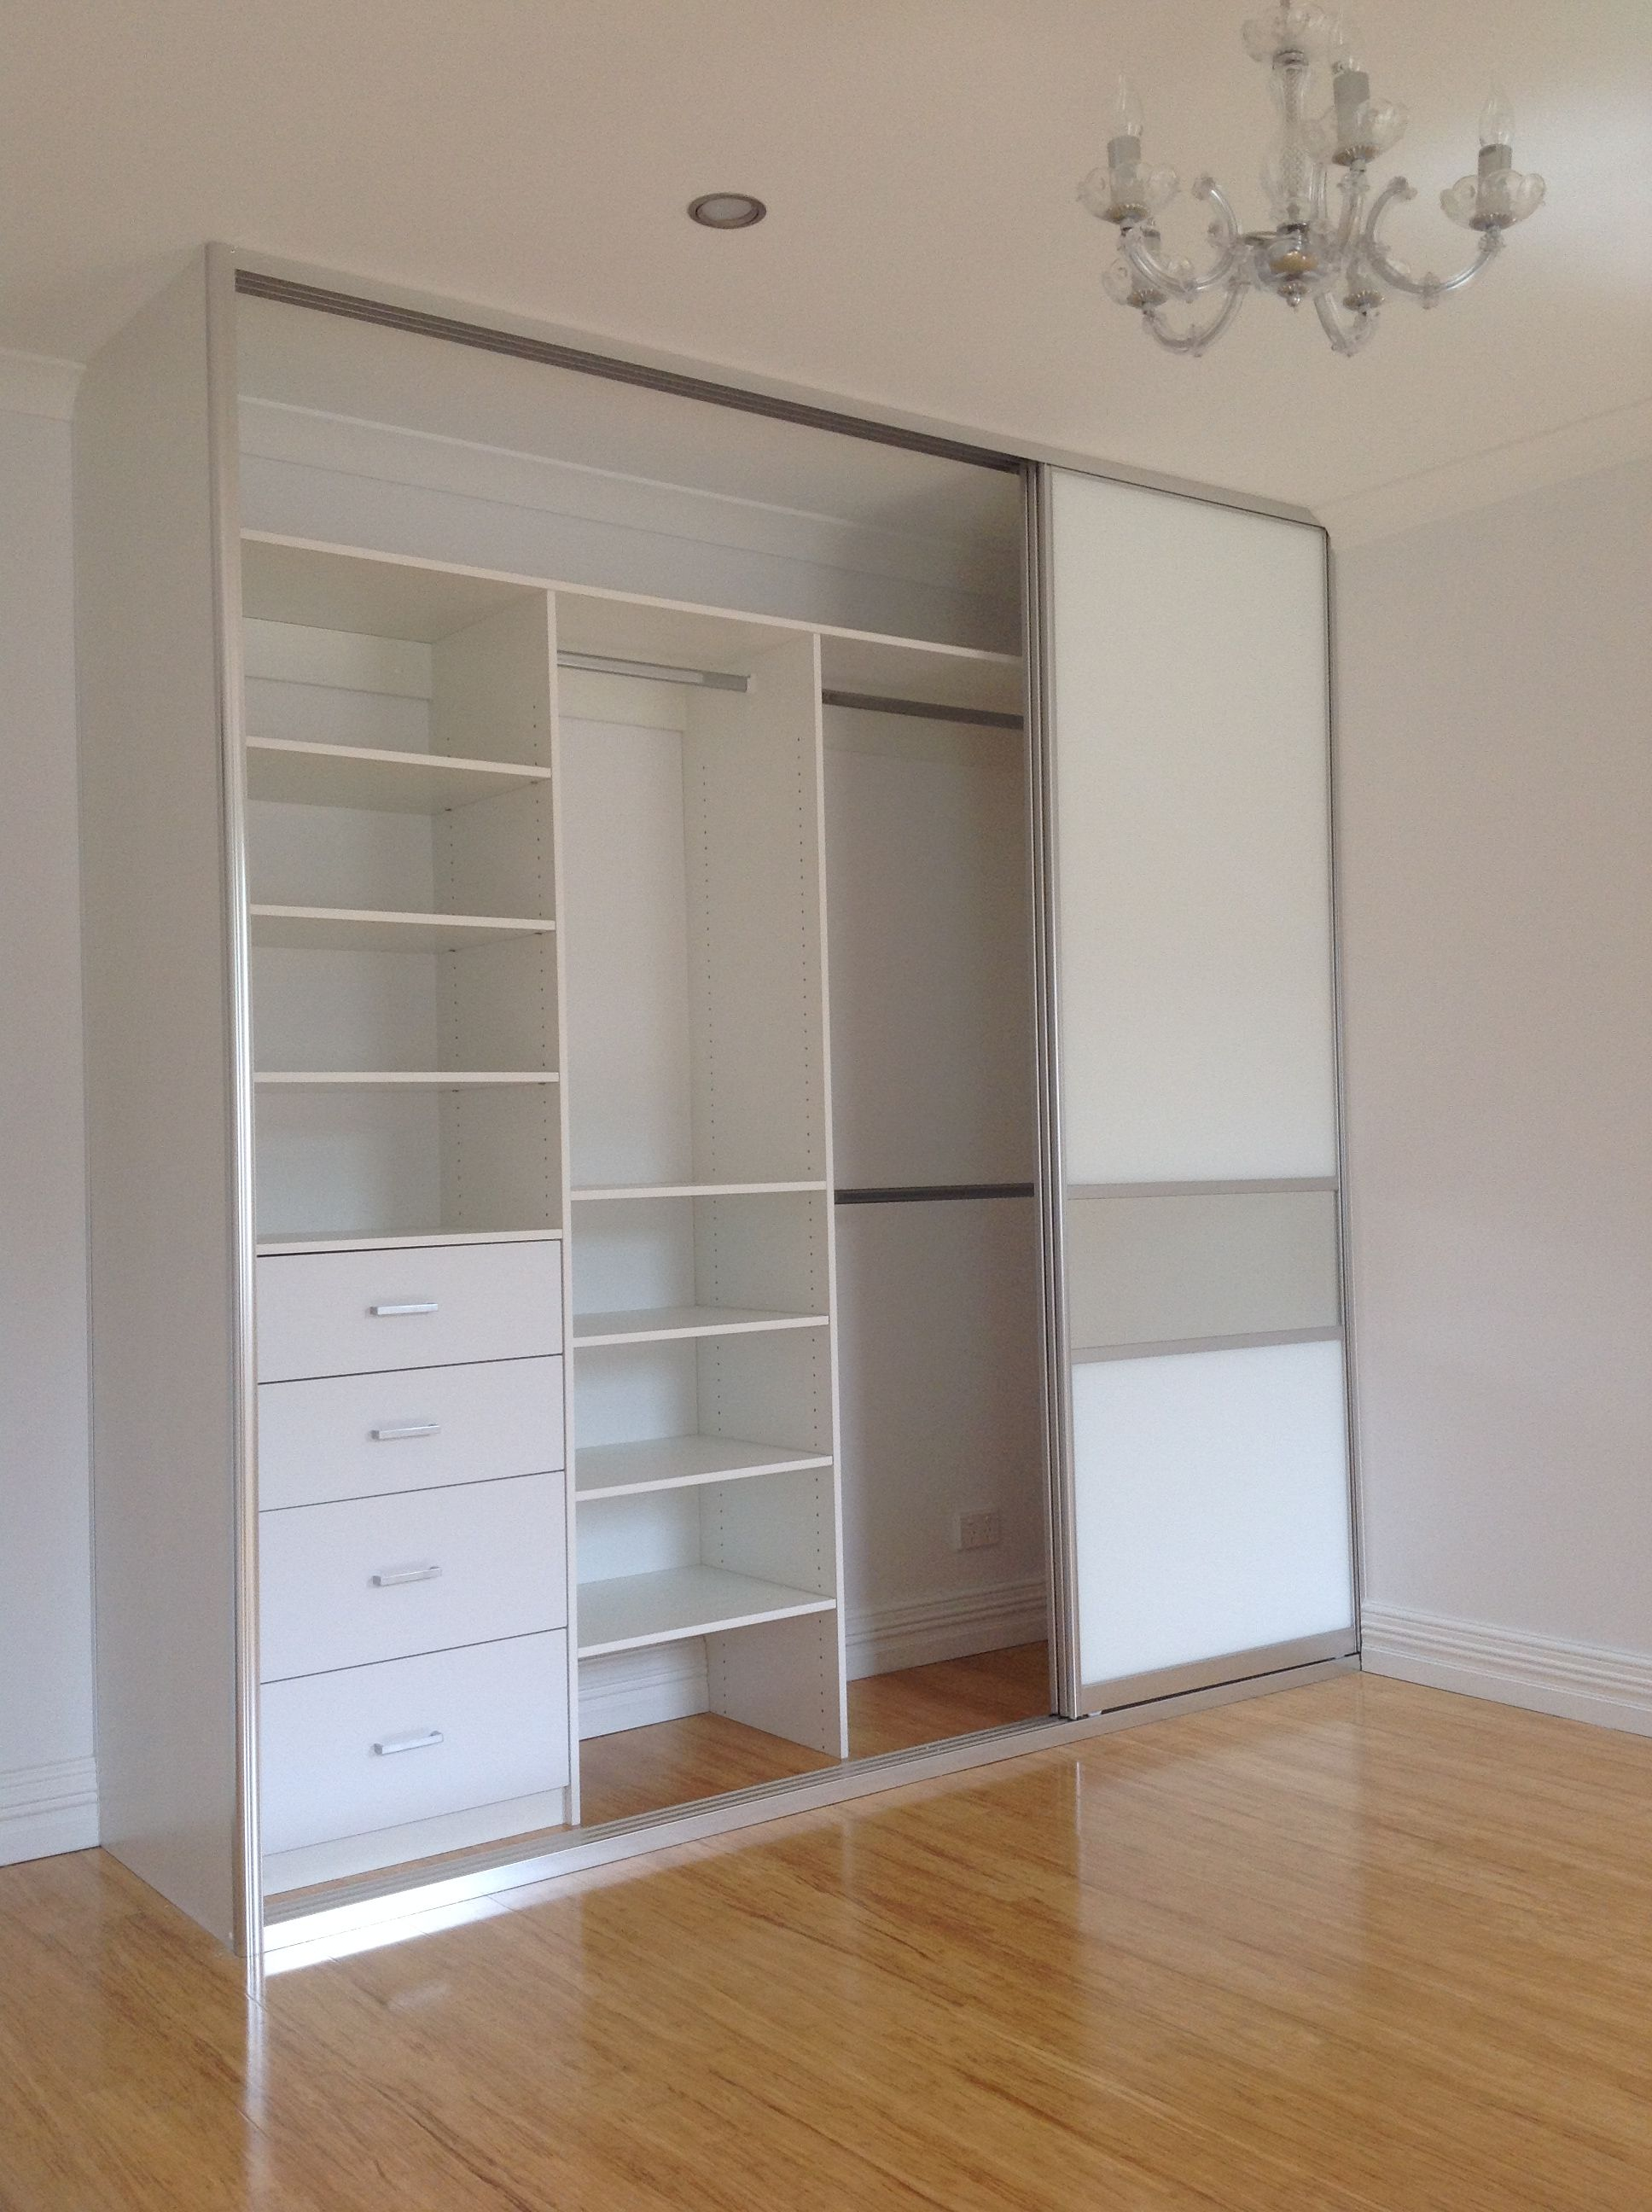 please view through our gallery of built in wardrobe pictures as we produce custom made built in wardrobes here you will find just a few examples of what - Built In Wardrobe